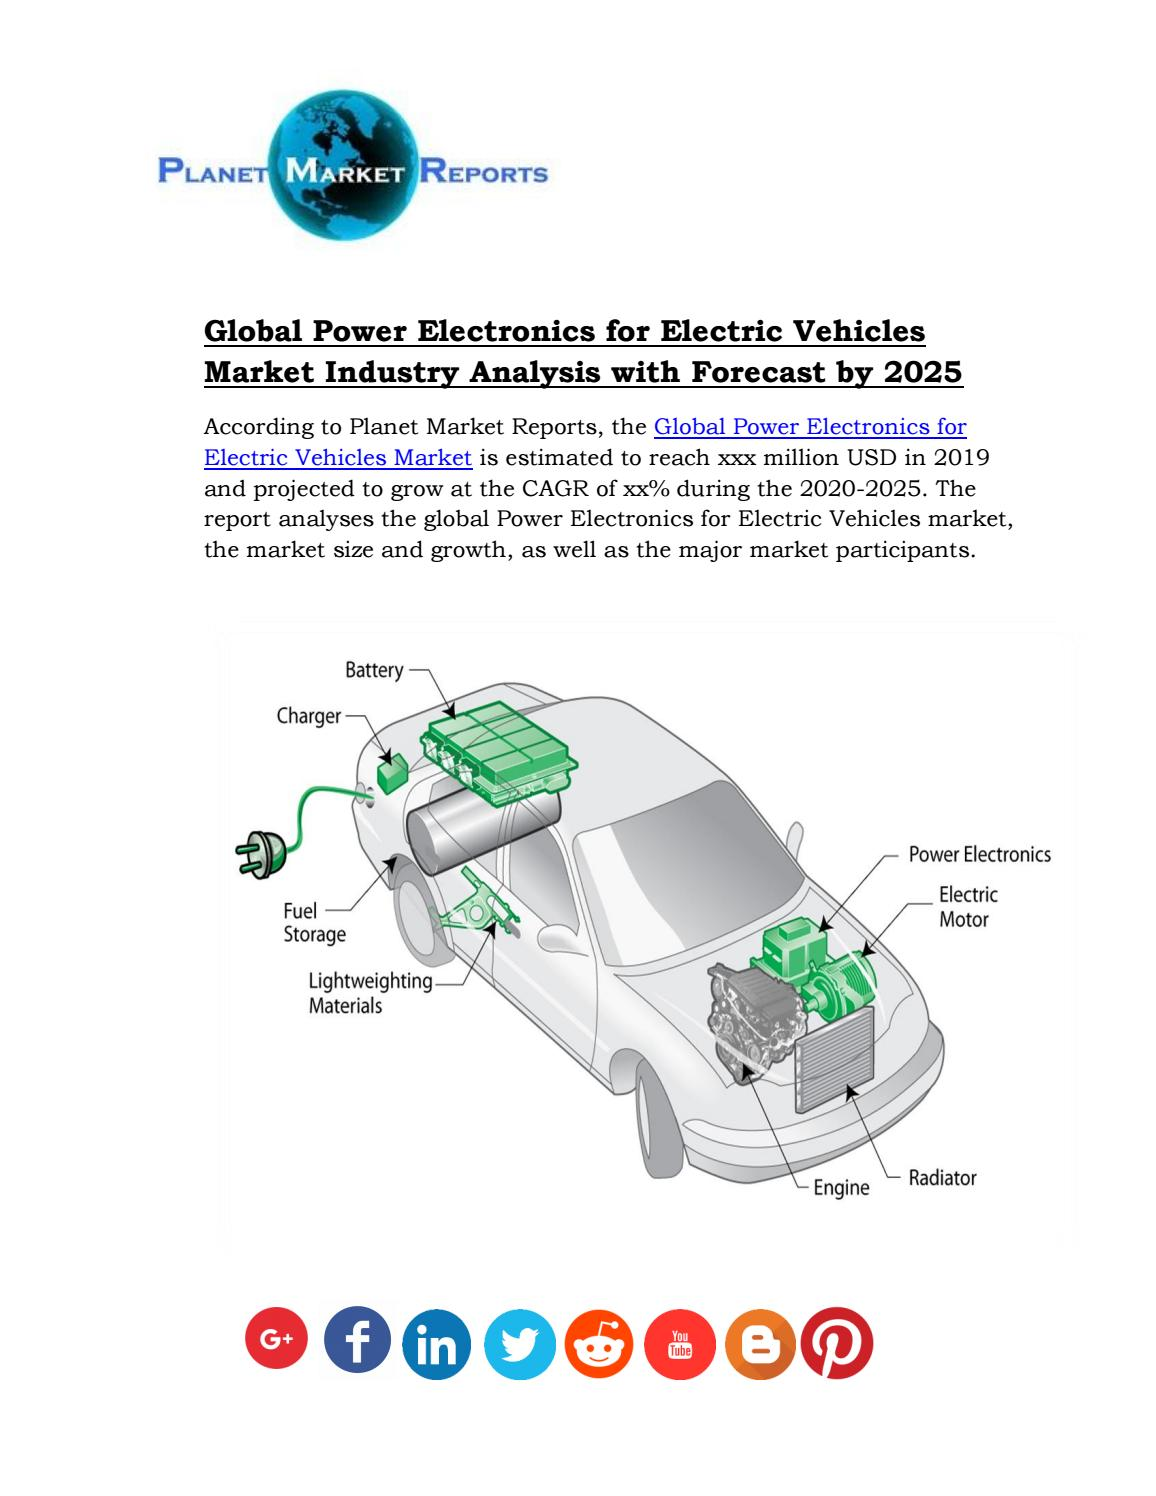 Global Power Electronics For Electric Vehicles Market Industry Analysis With Forecast By 2025 By Jhon Dane Issuu